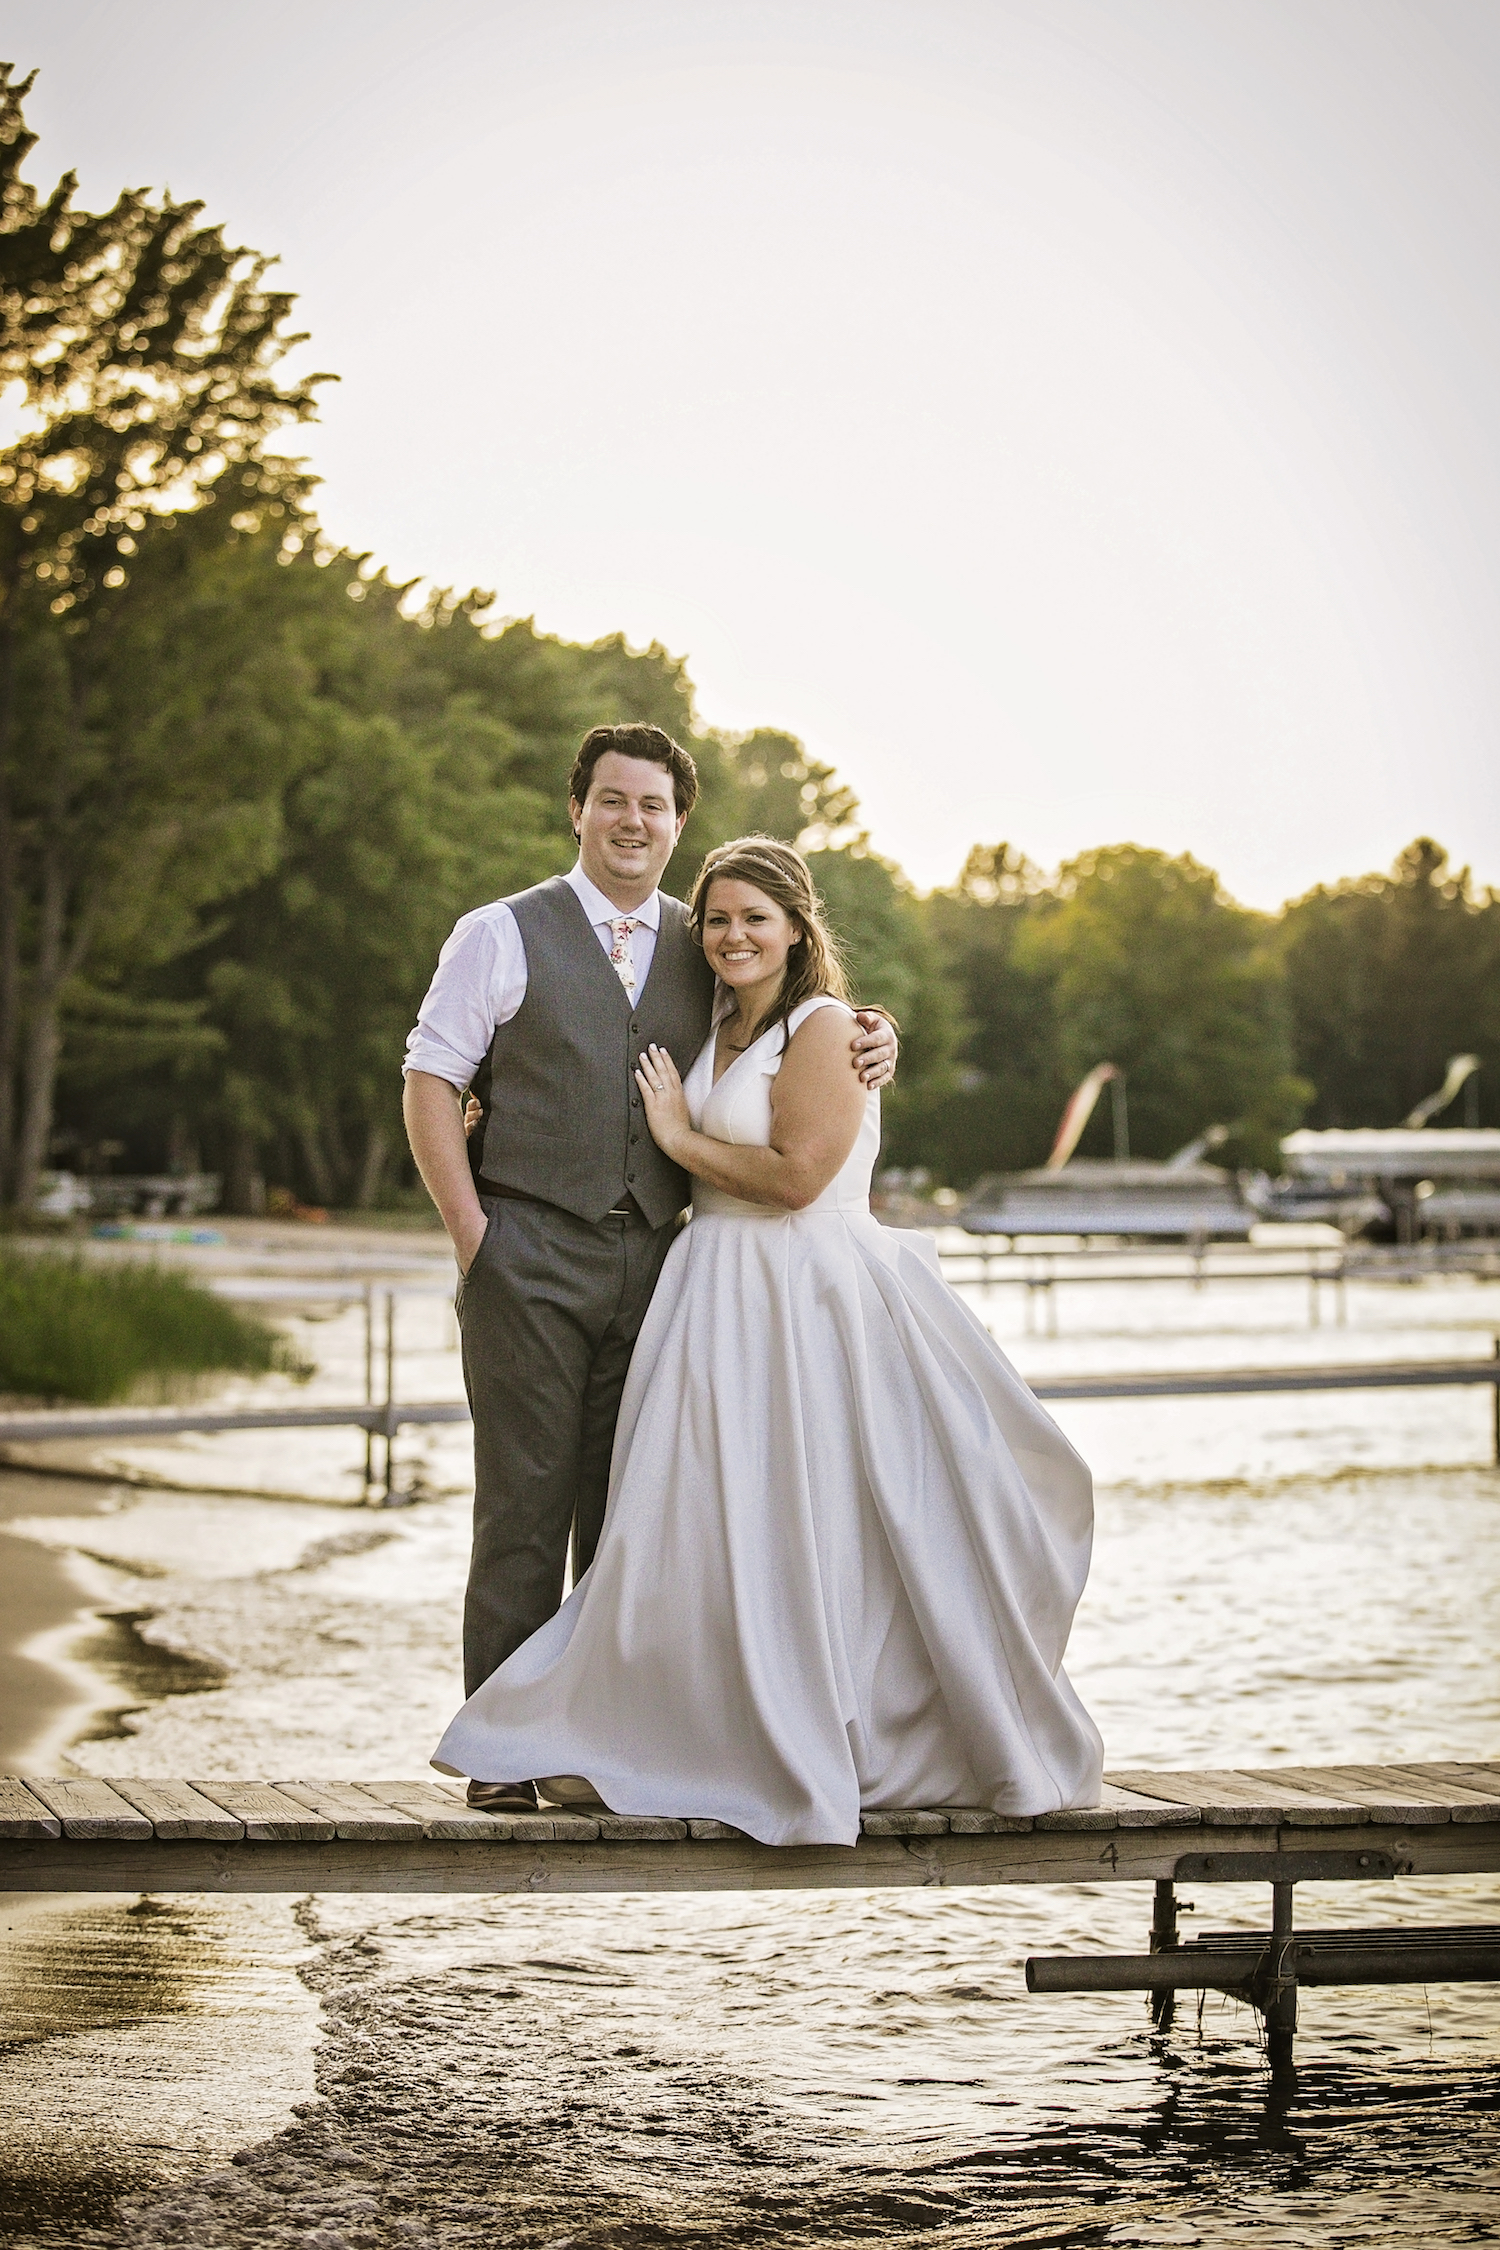 Bride and groom standing on lake dock